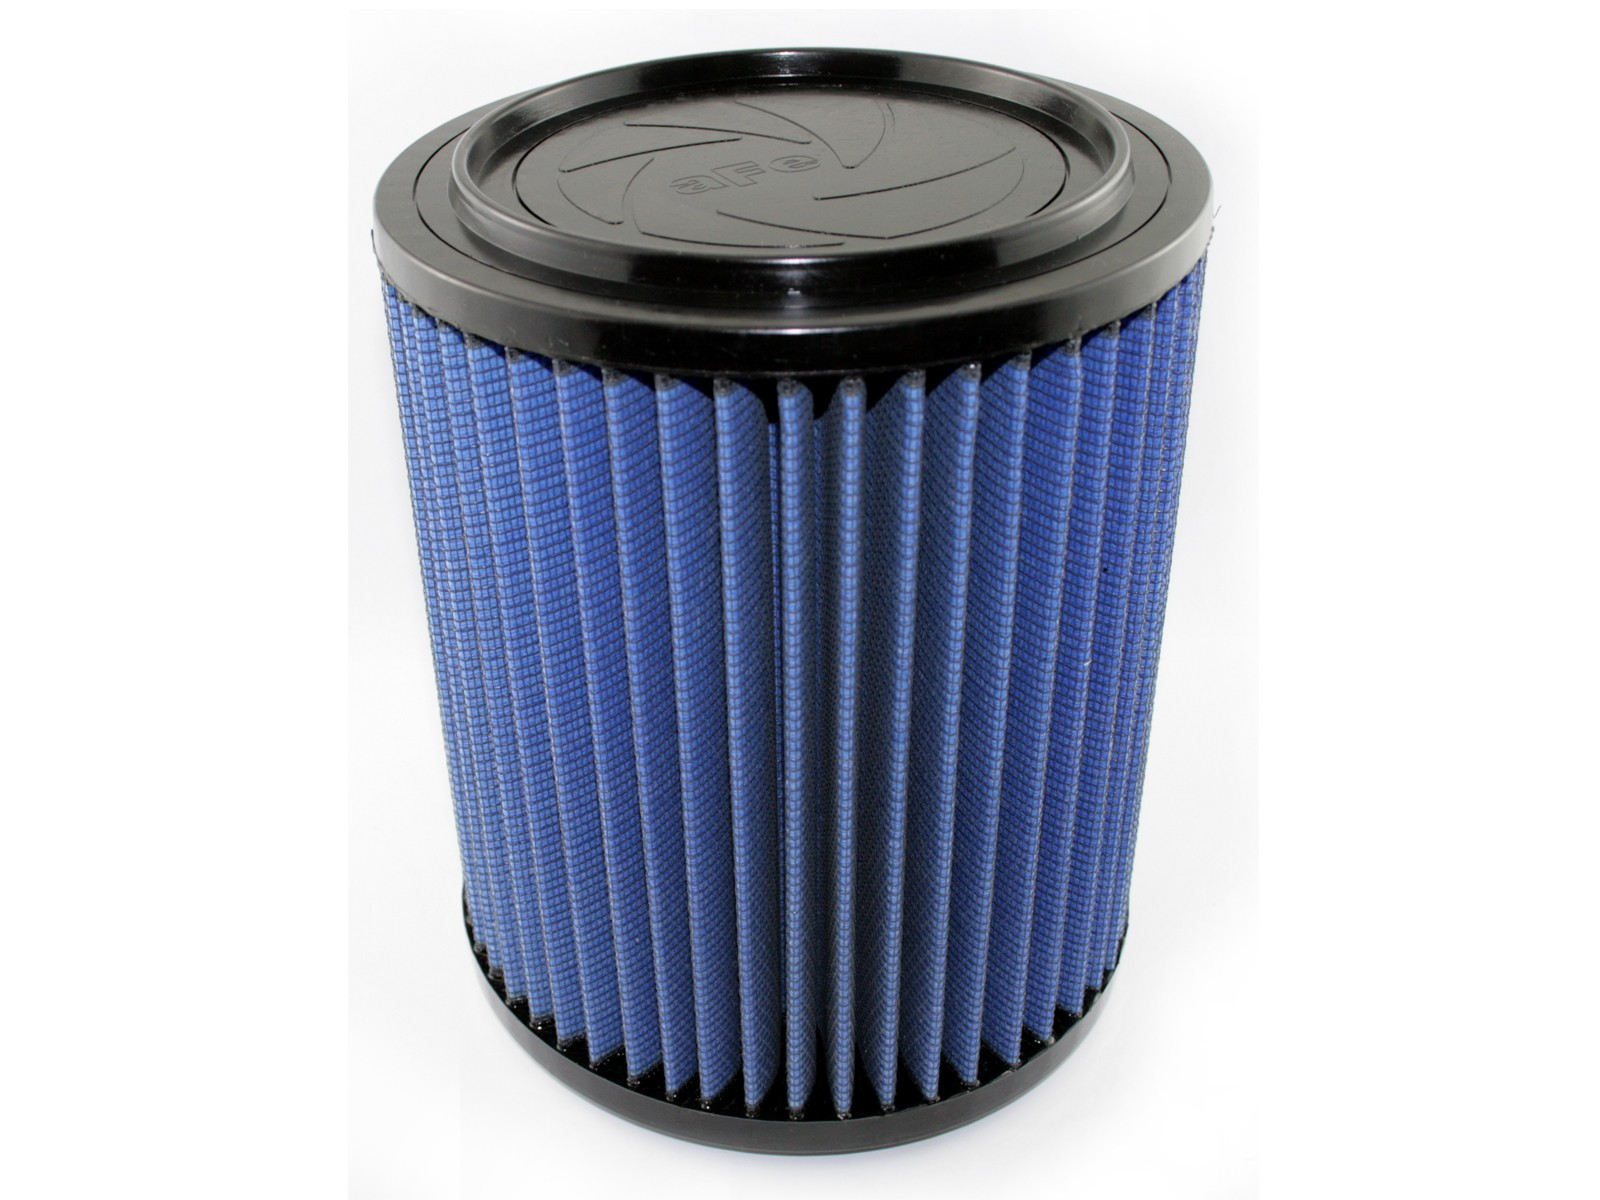 aFe POWER 10-10030 Magnum FLOW Pro 5R Air Filter